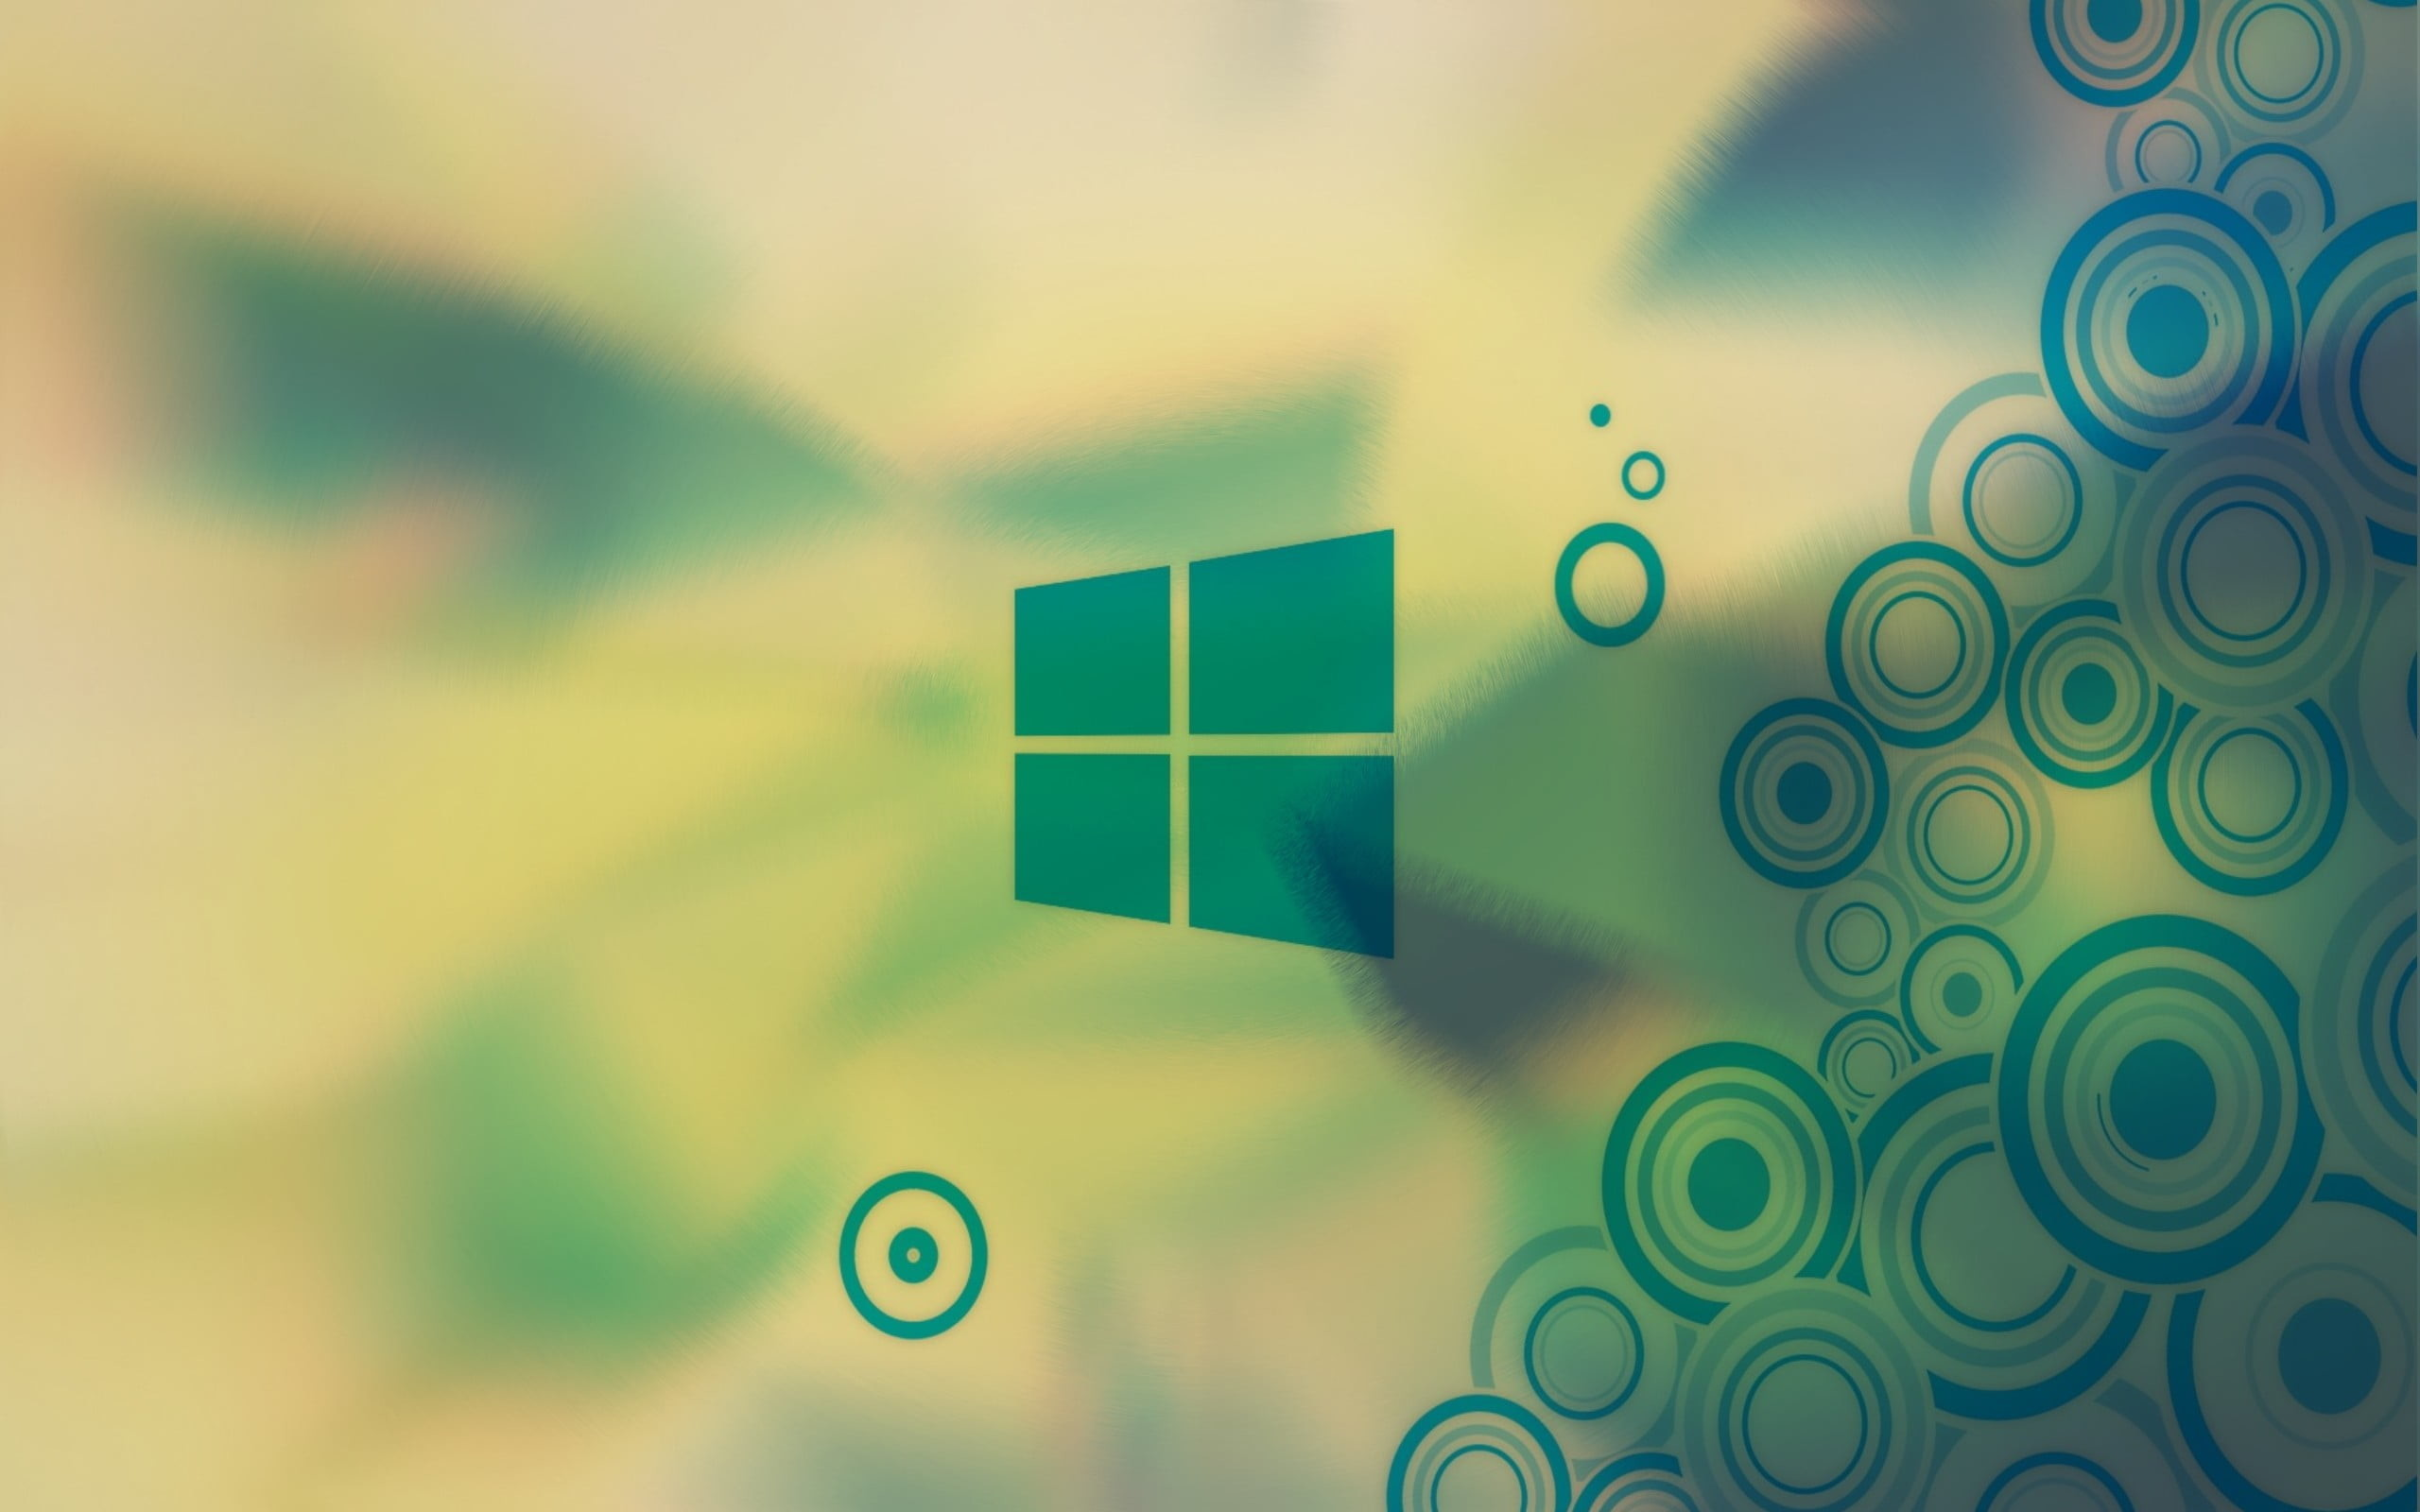 2560x1600 Windows 10 logo, window, Windows 10, Microsoft Windows, Windows Vista HD  wallpaper